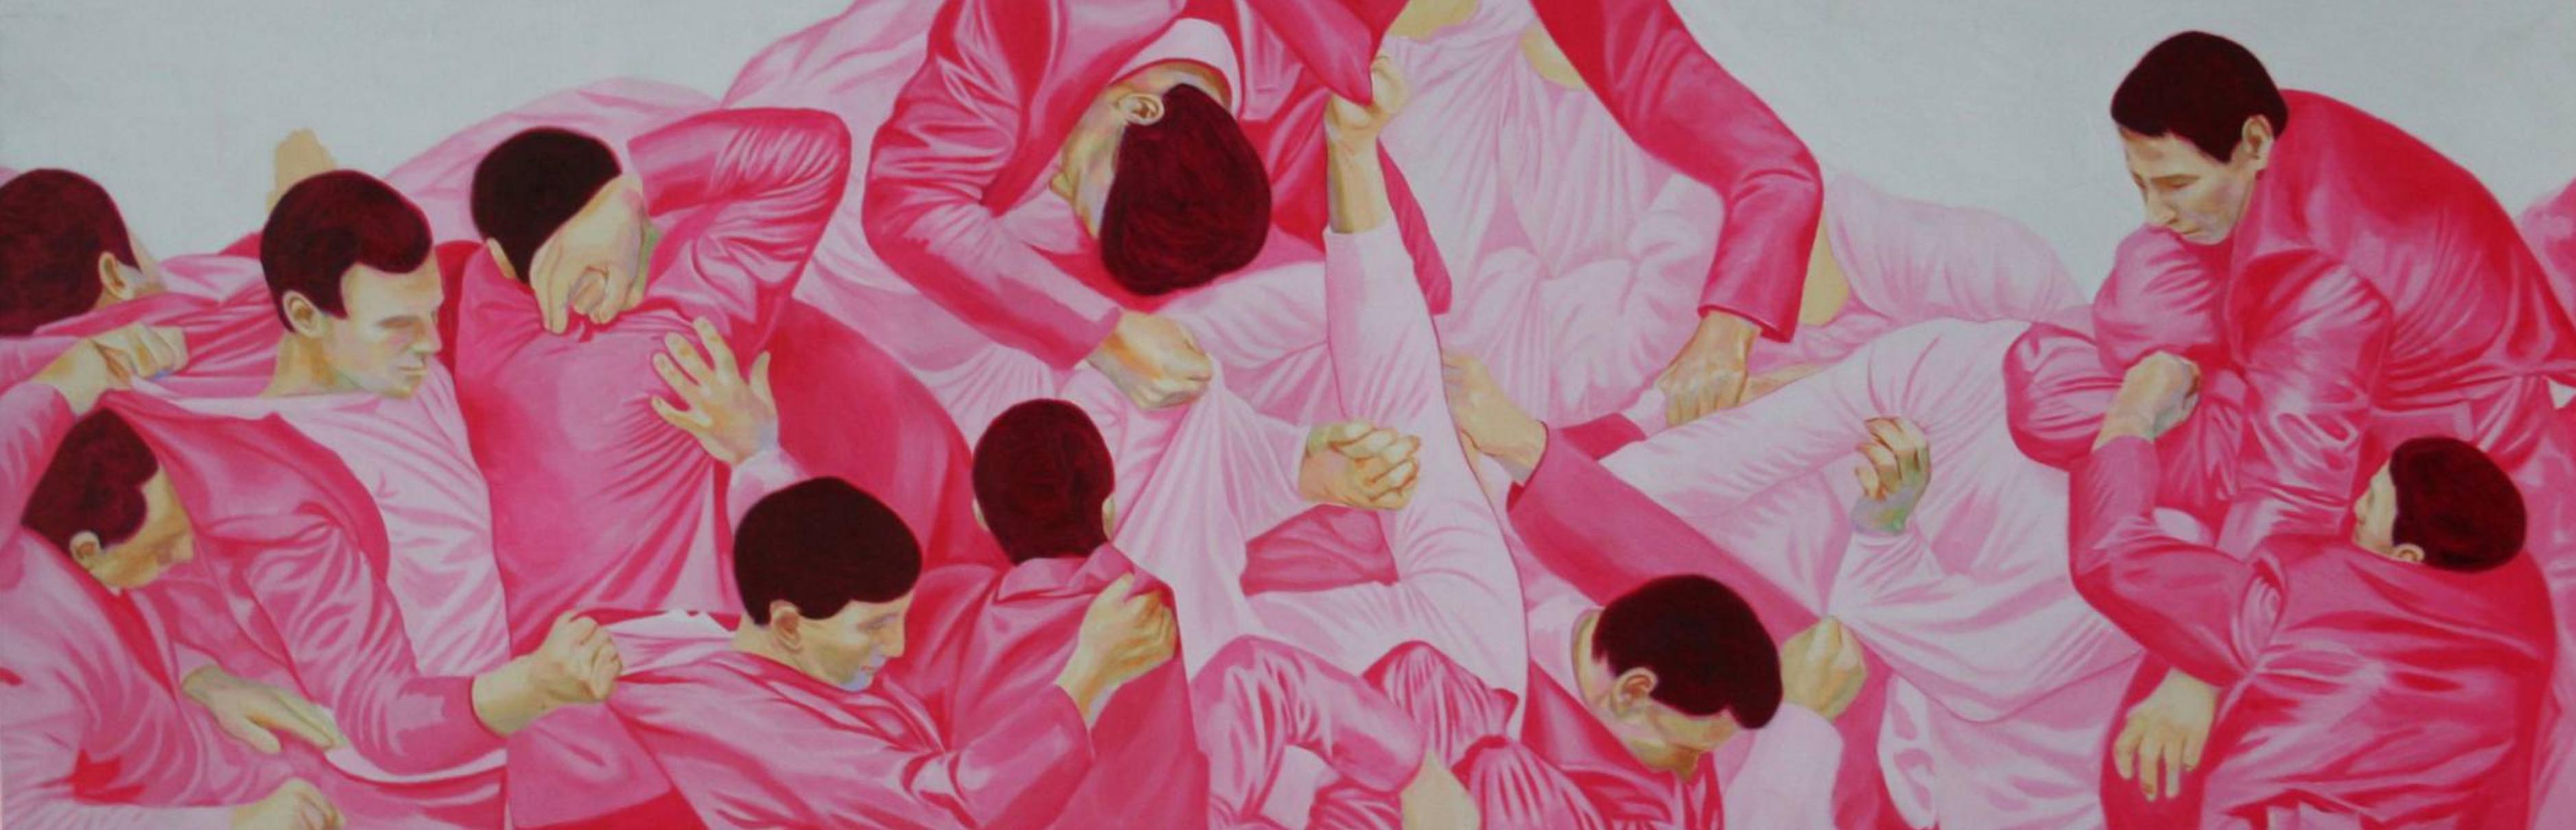 Su hyun Kim, Pink Hide and seek , 2016, oil on canvas, 56 x 170 cm